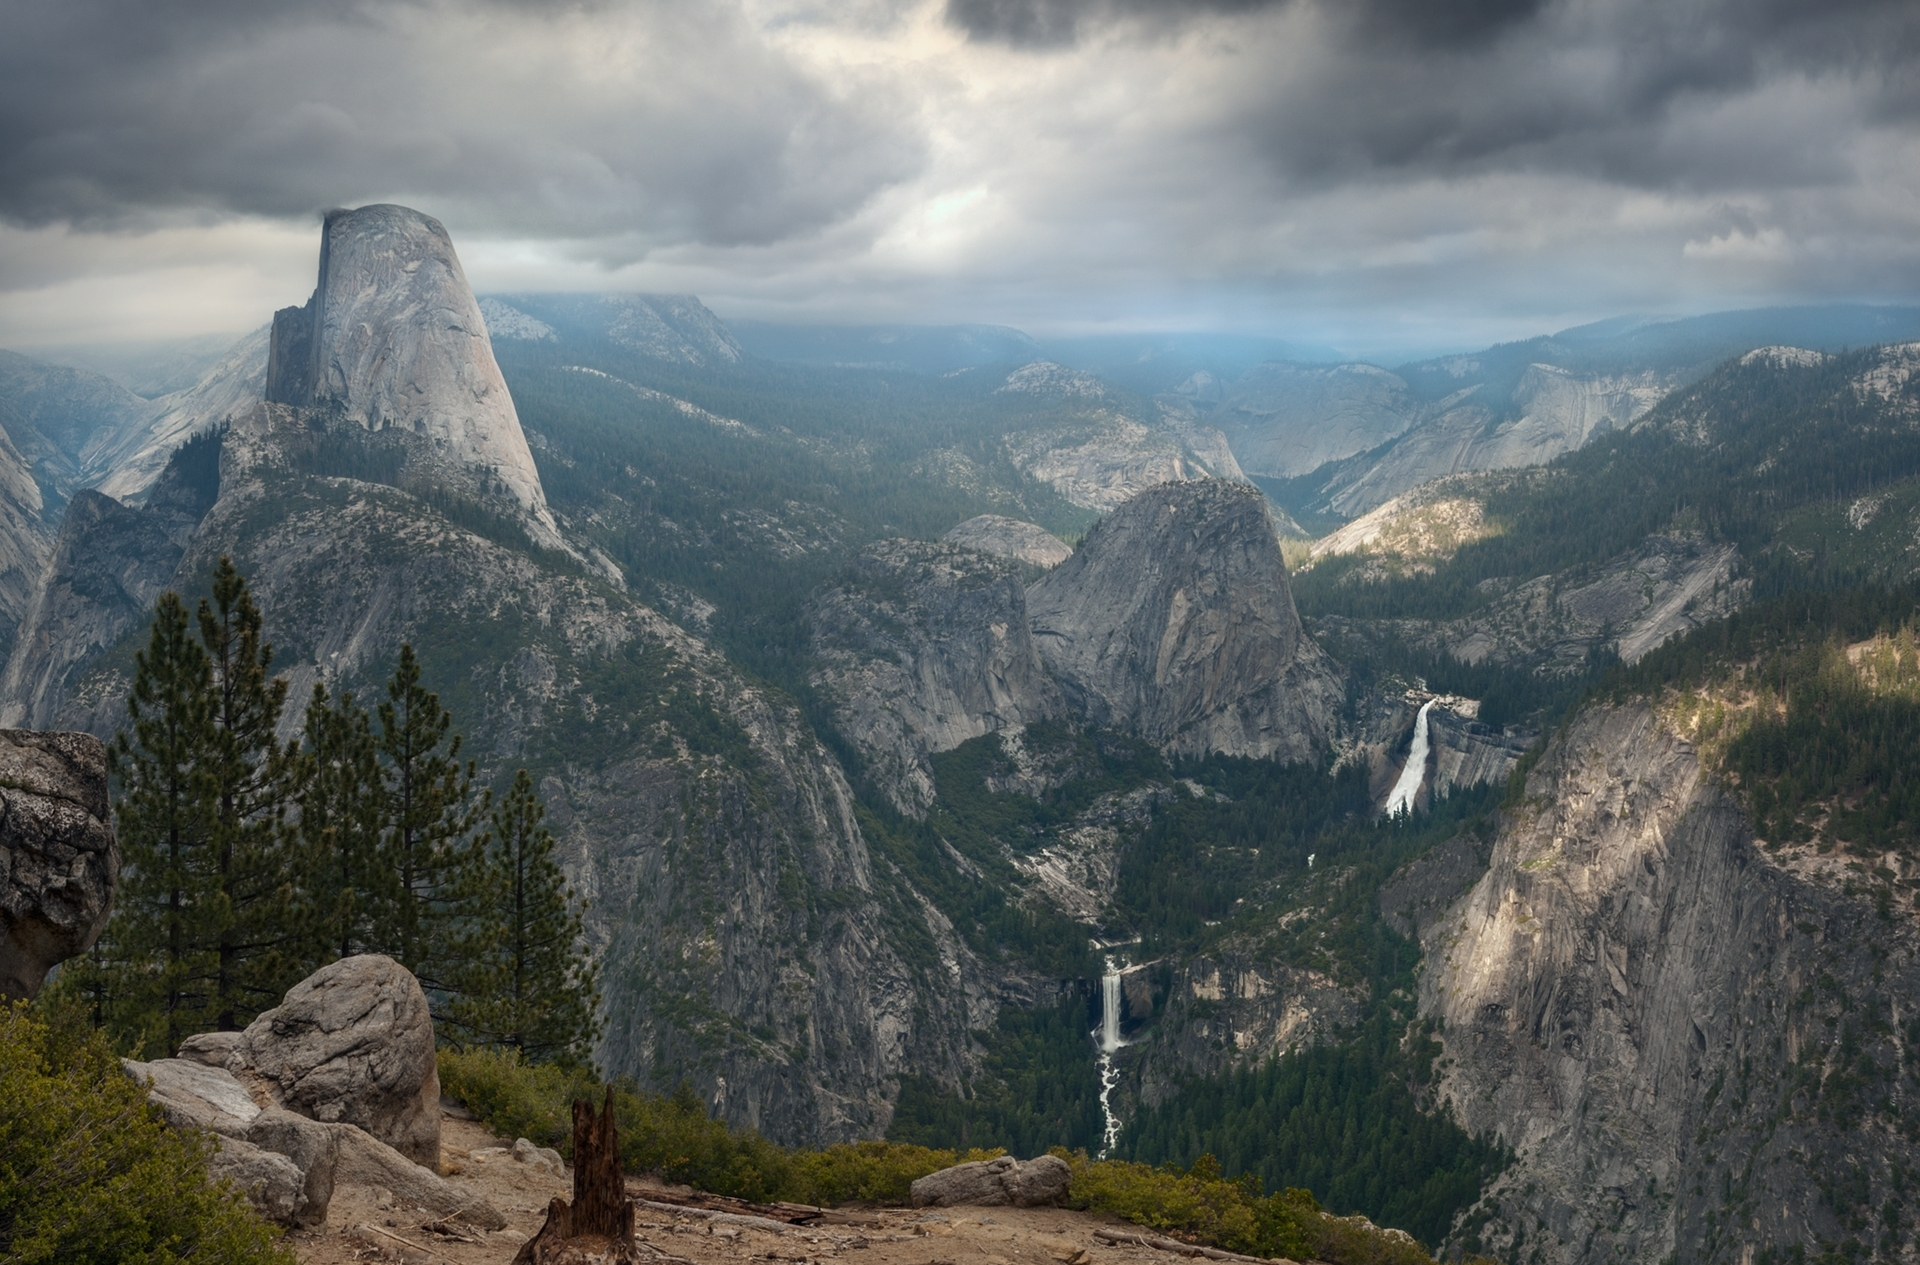 Yosemite national park wallpapers 24 wallpapers - Yosemite national park hd wallpaper ...